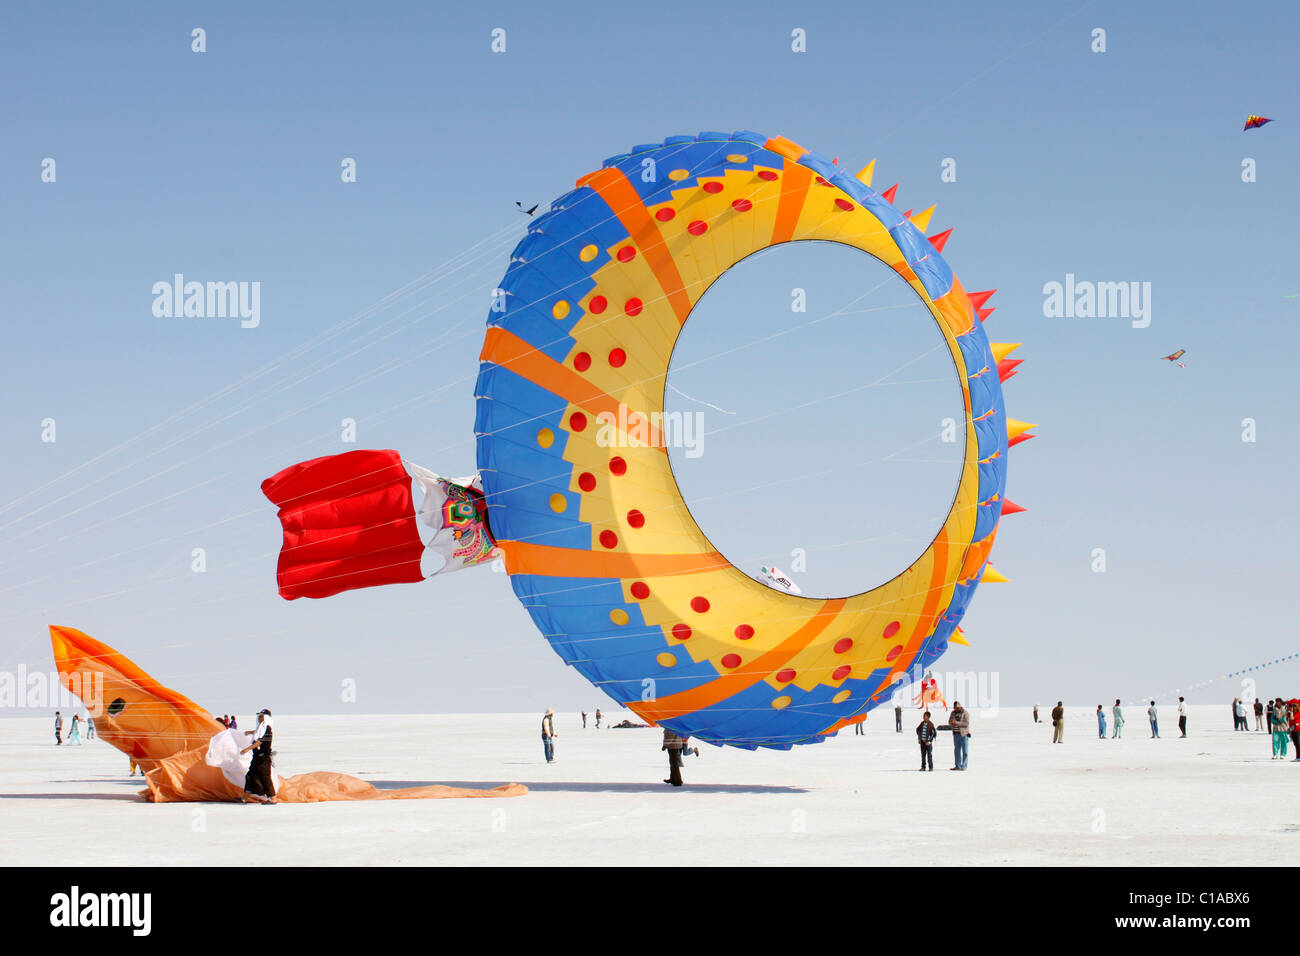 International Kite Festival of Rann of Kutch, Gujarat,India - Stock Image